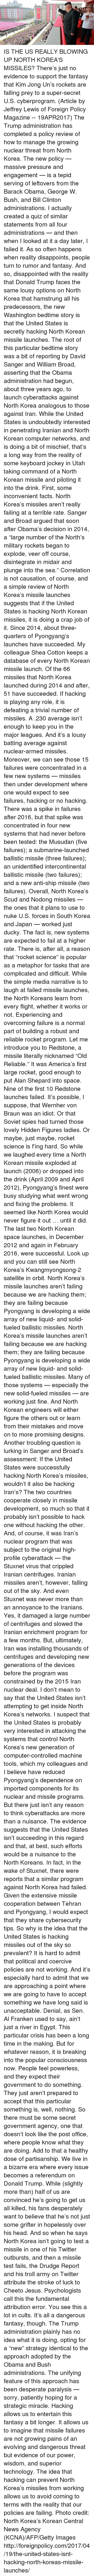 """cheeto jesus: .2 IS THE US REALLY BLOWING UP NORTH KOREA'S MISSILES?  There's just no evidence to support the fantasy that Kim Jong Un's rockets are falling prey to a super-secret U.S. cyberprogram.  (Article by Jeffrey Lewis of Foreign Policy Magazine -- 19APR2017)  The Trump administration has completed a policy review of how to manage the growing nuclear threat from North Korea. The new policy — massive pressure and engagement — is a tepid serving of leftovers from the Barack Obama, George W. Bush, and Bill Clinton administrations. I actually created a quiz of similar statements from all four administrations — and then when I looked at it a day later, I failed it.  As so often happens when reality disappoints, people turn to rumor and fantasy. And so, disappointed with the reality that Donald Trump faces the same lousy options on North Korea that hamstrung all his predecessors, the new Washington bedtime story is that the United States is secretly hacking North Korean missile launches.  The root of this particular bedtime story was a bit of reporting by David Sanger and William Broad, asserting that the Obama administration had begun, about three years ago, to launch cyberattacks against North Korea analogous to those against Iran.  While the United States is undoubtedly interested in penetrating Iranian and North Korean computer networks, and is doing a bit of mischief, that's a long way from the reality of some keyboard jockey in Utah taking command of a North Korean missile and piloting it into the drink.  First, some inconvenient facts. North Korea's missiles aren't really failing at a terrible rate. Sanger and Broad argued that soon after Obama's decision in 2014, a """"large number of the North's military rockets began to explode, veer off course, disintegrate in midair and plunge into the sea.""""  Correlation is not causation, of course, and a simple review of North Korea's missile launches suggests that if the United States is hacking North Korean missiles, it"""